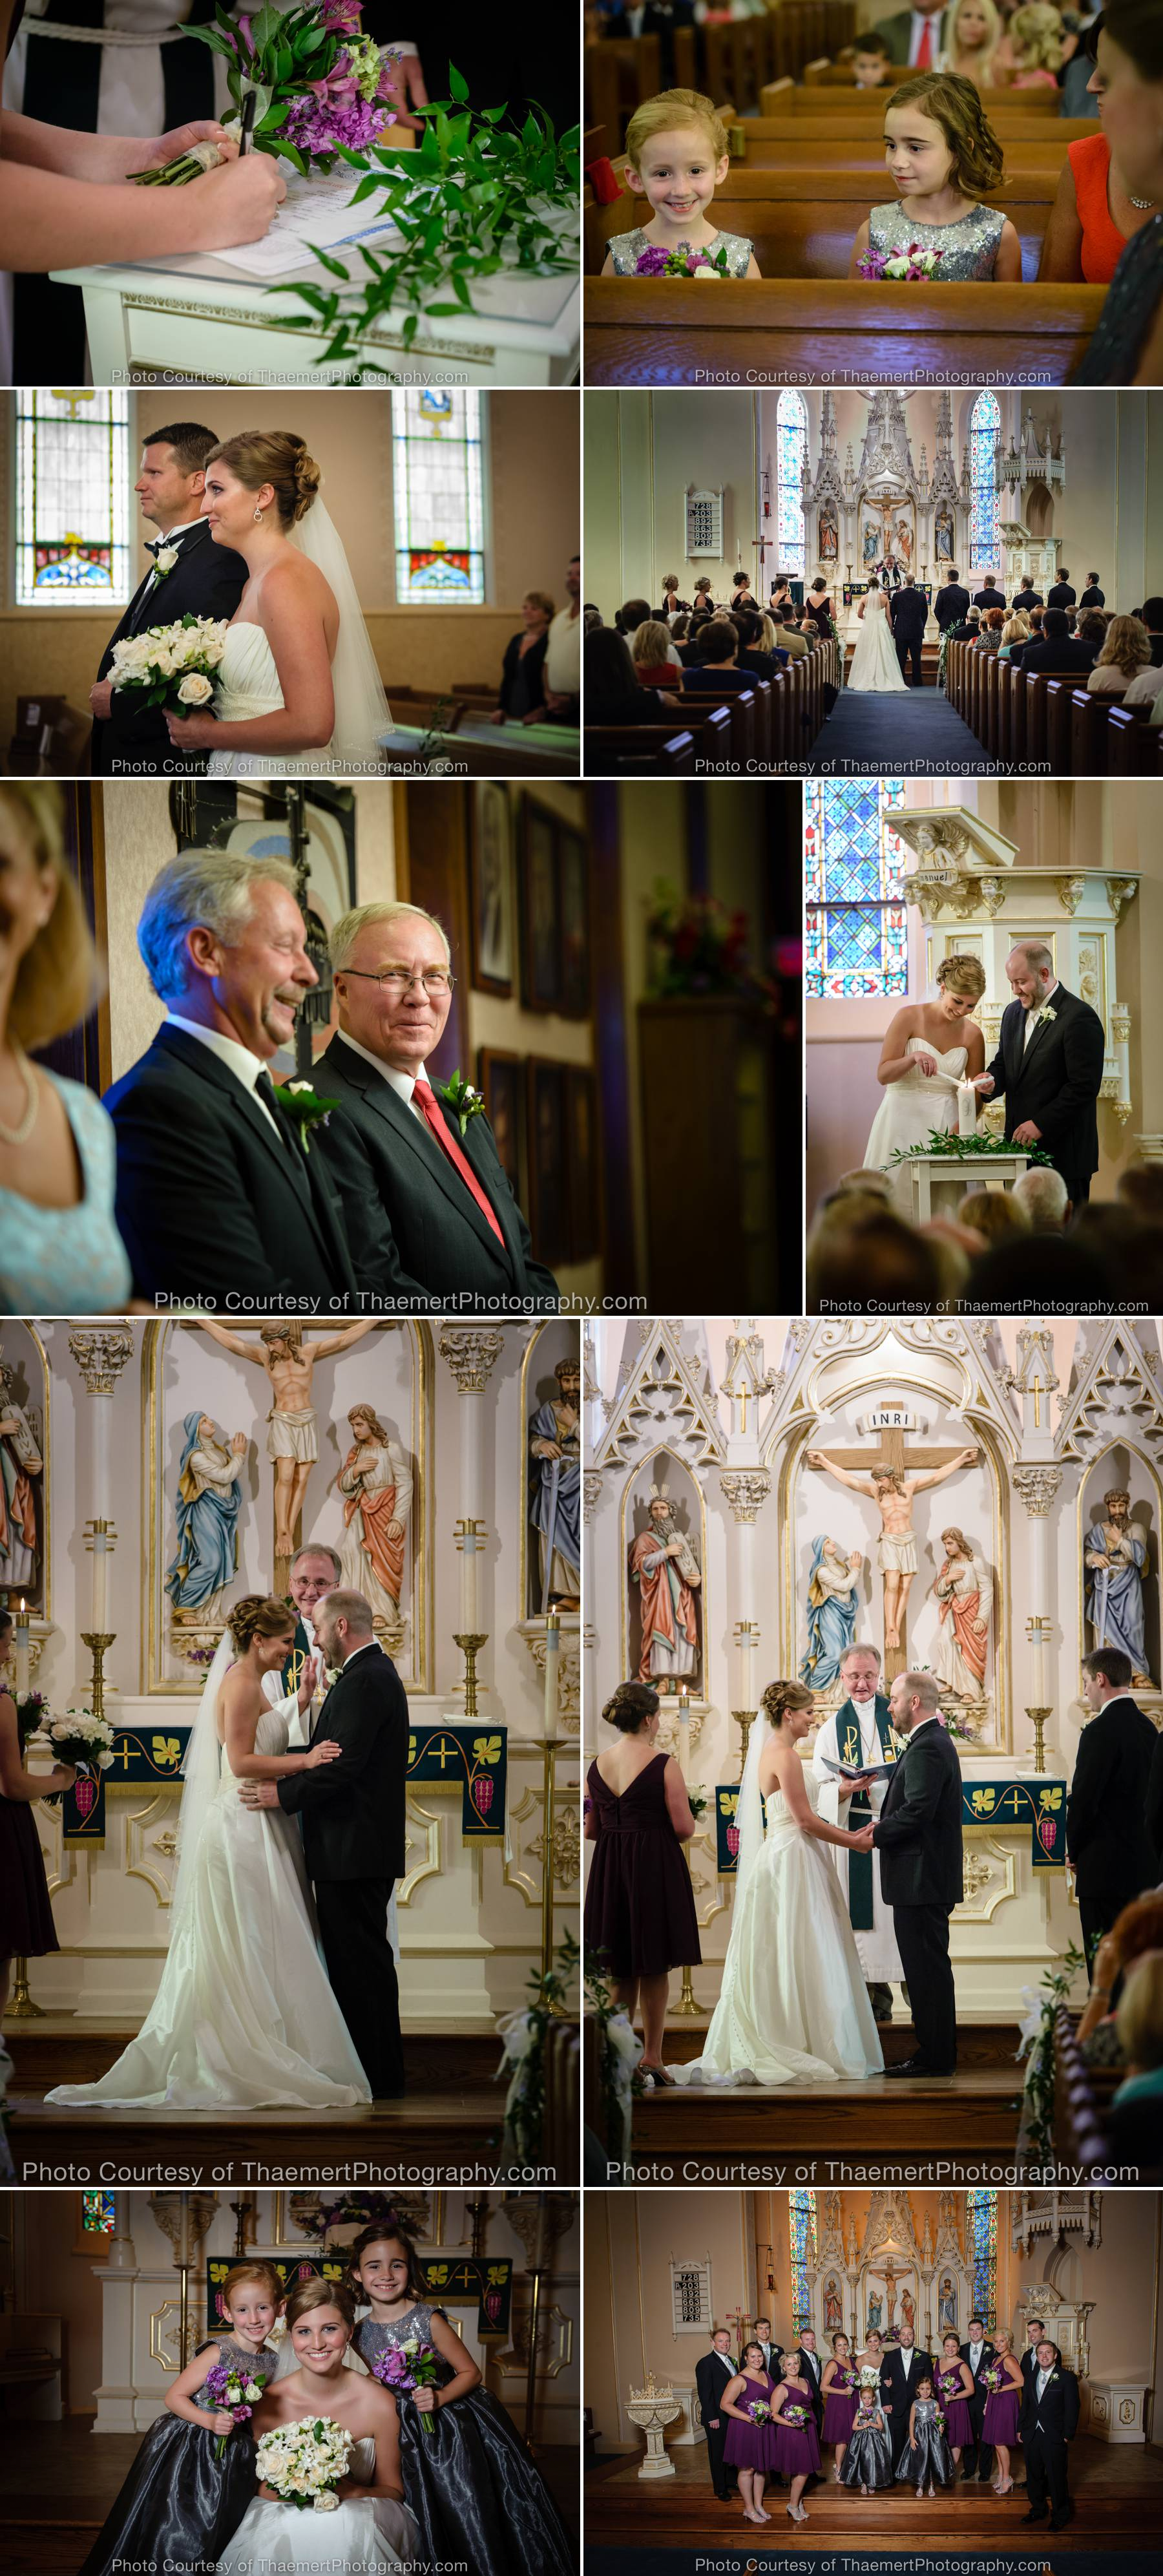 Wedding Photography St Charles Immanuel Lutheran